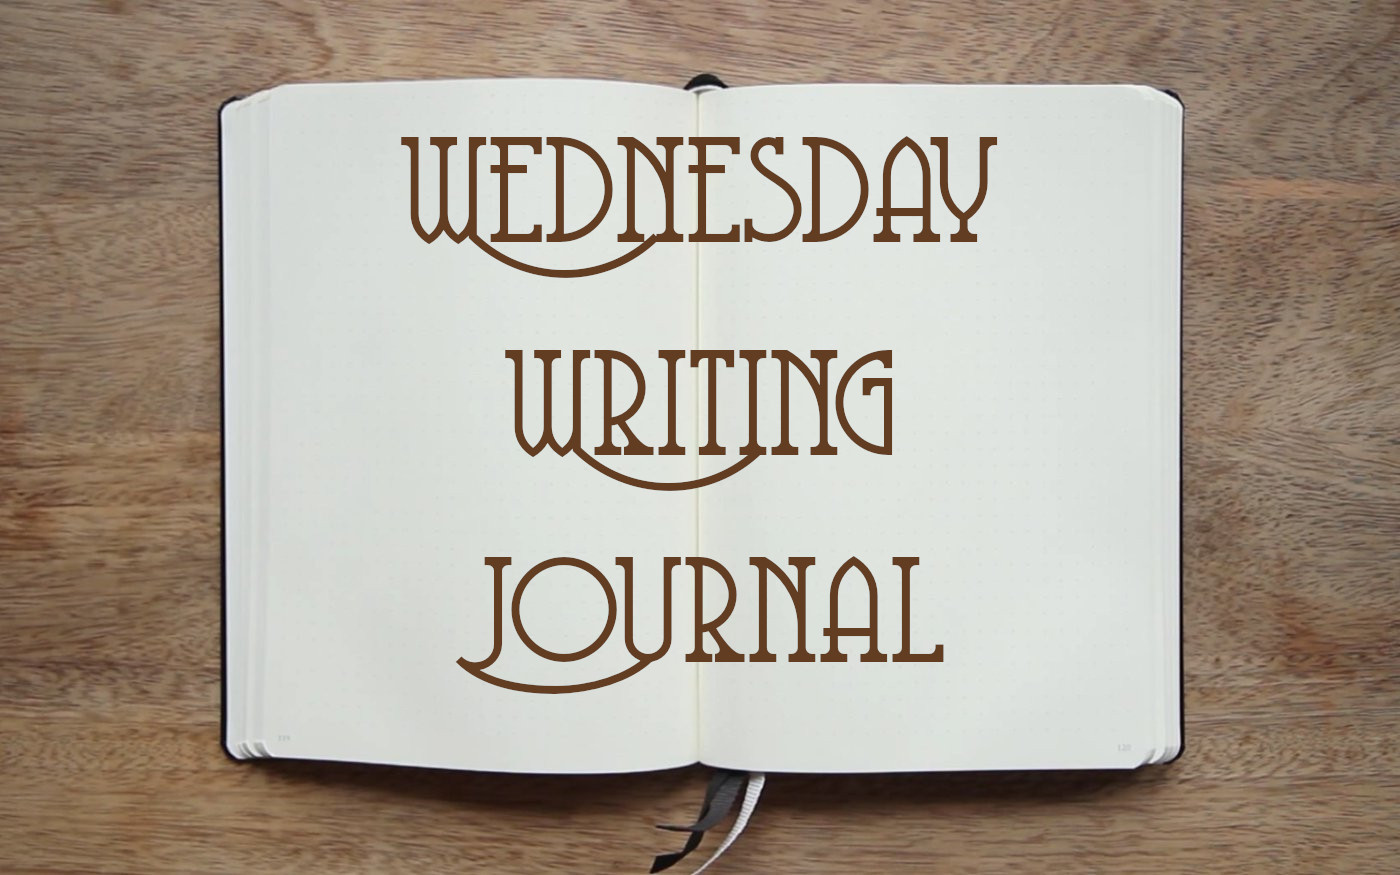 Wednesday Writing Journal: March 25, 2020